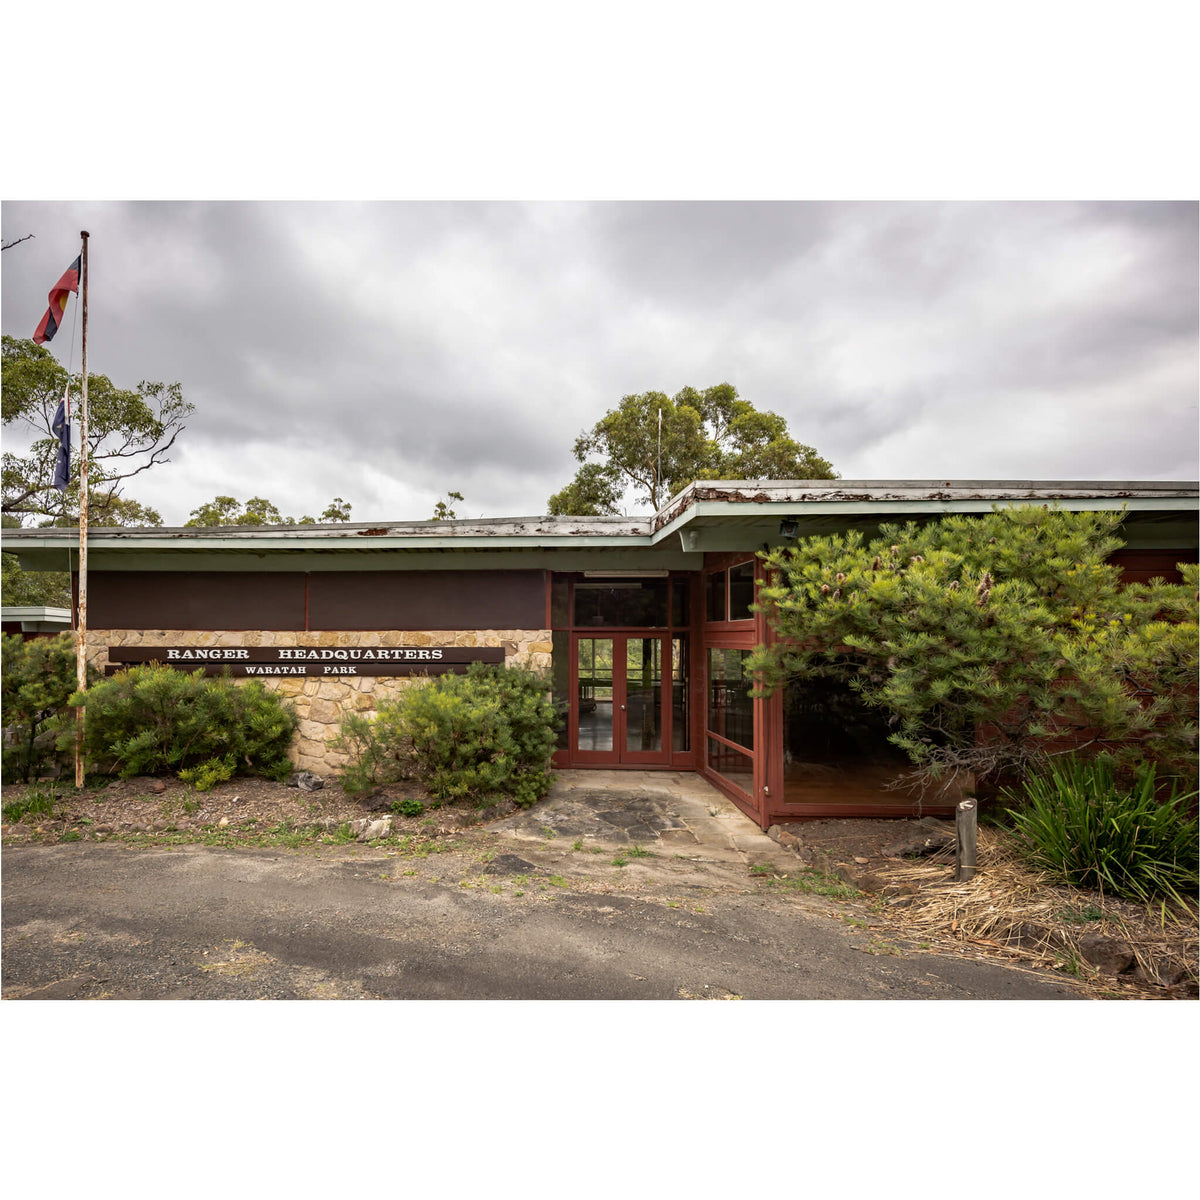 Ranger Headquarters | Waratah Park Fine Art Print - Lost Collective Shop